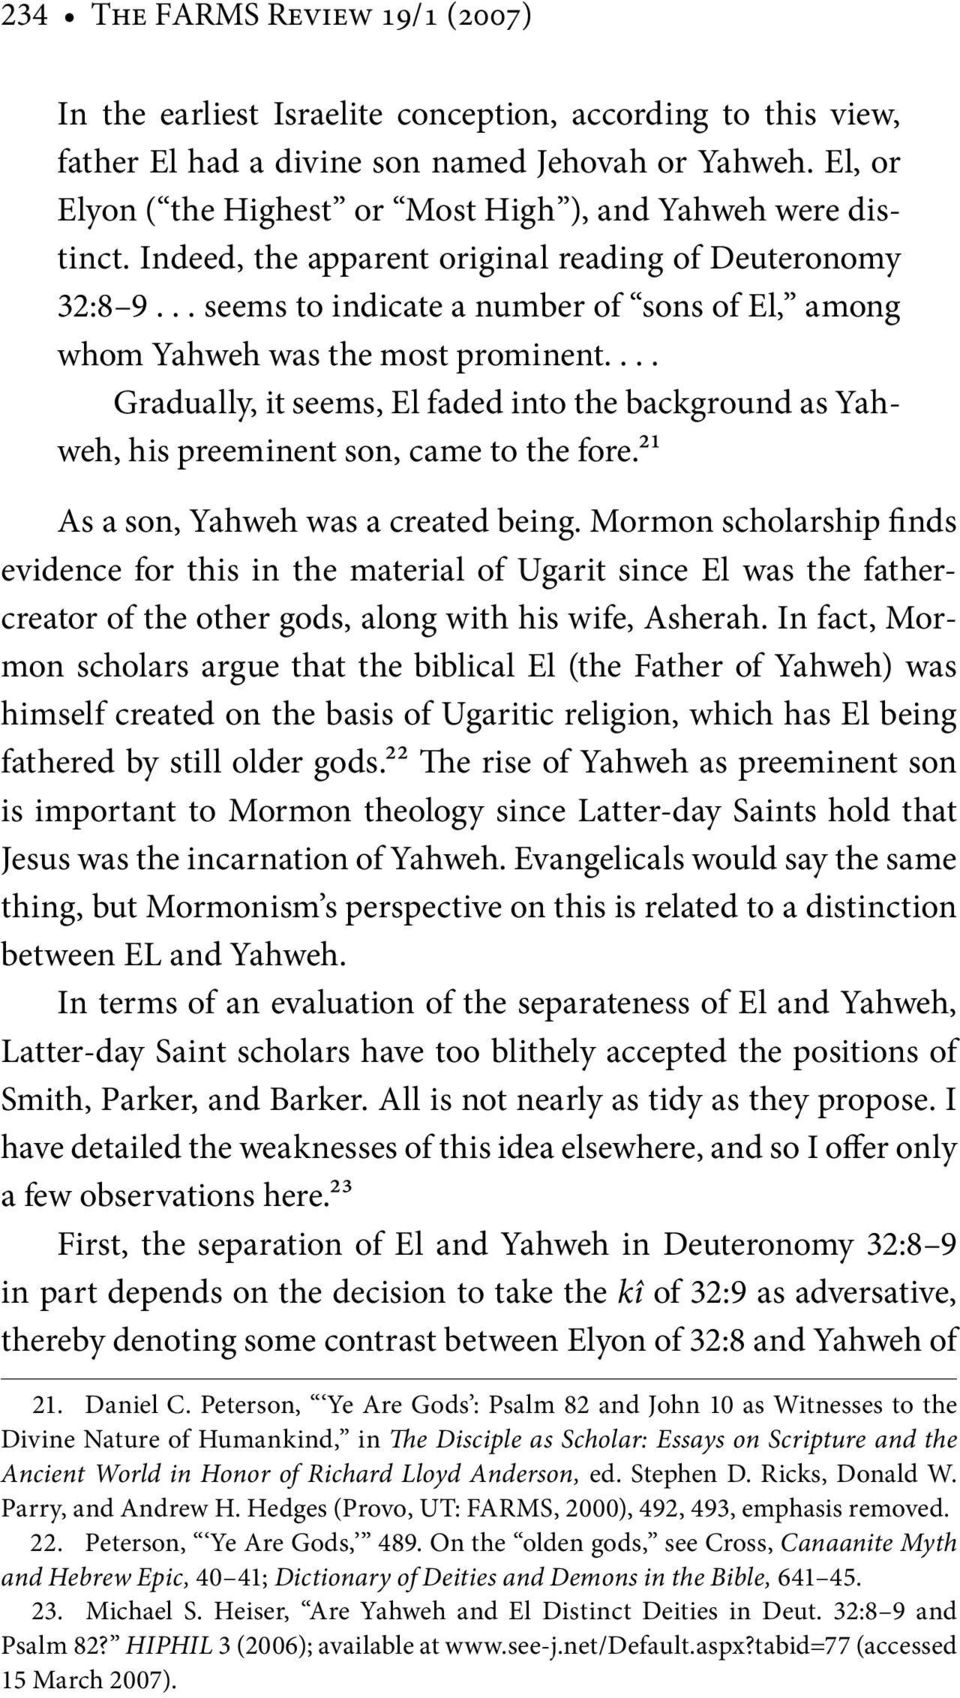 .. seems to indicate a number of sons of El, among whom Yahweh was the most prominent.... Gradually, it seems, El faded into the background as Yahweh, his preeminent son, came to the fore.